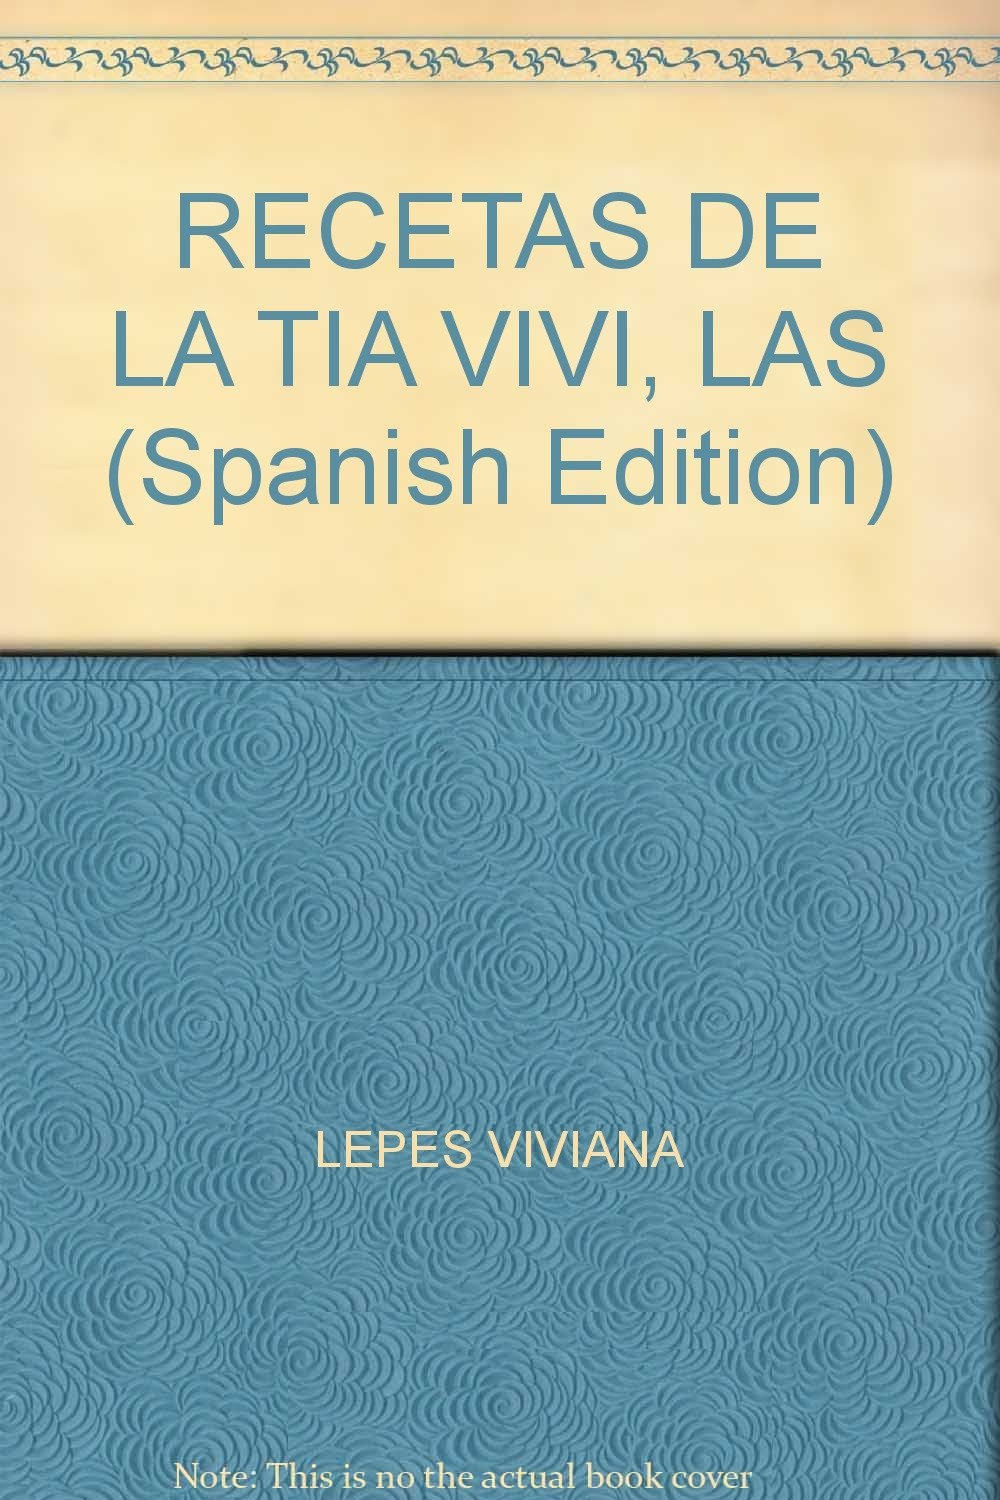 RECETAS DE LA TIA VIVI, LAS (Spanish Edition): LEPES VIVIANA: 9789504928874: Amazon.com: Books